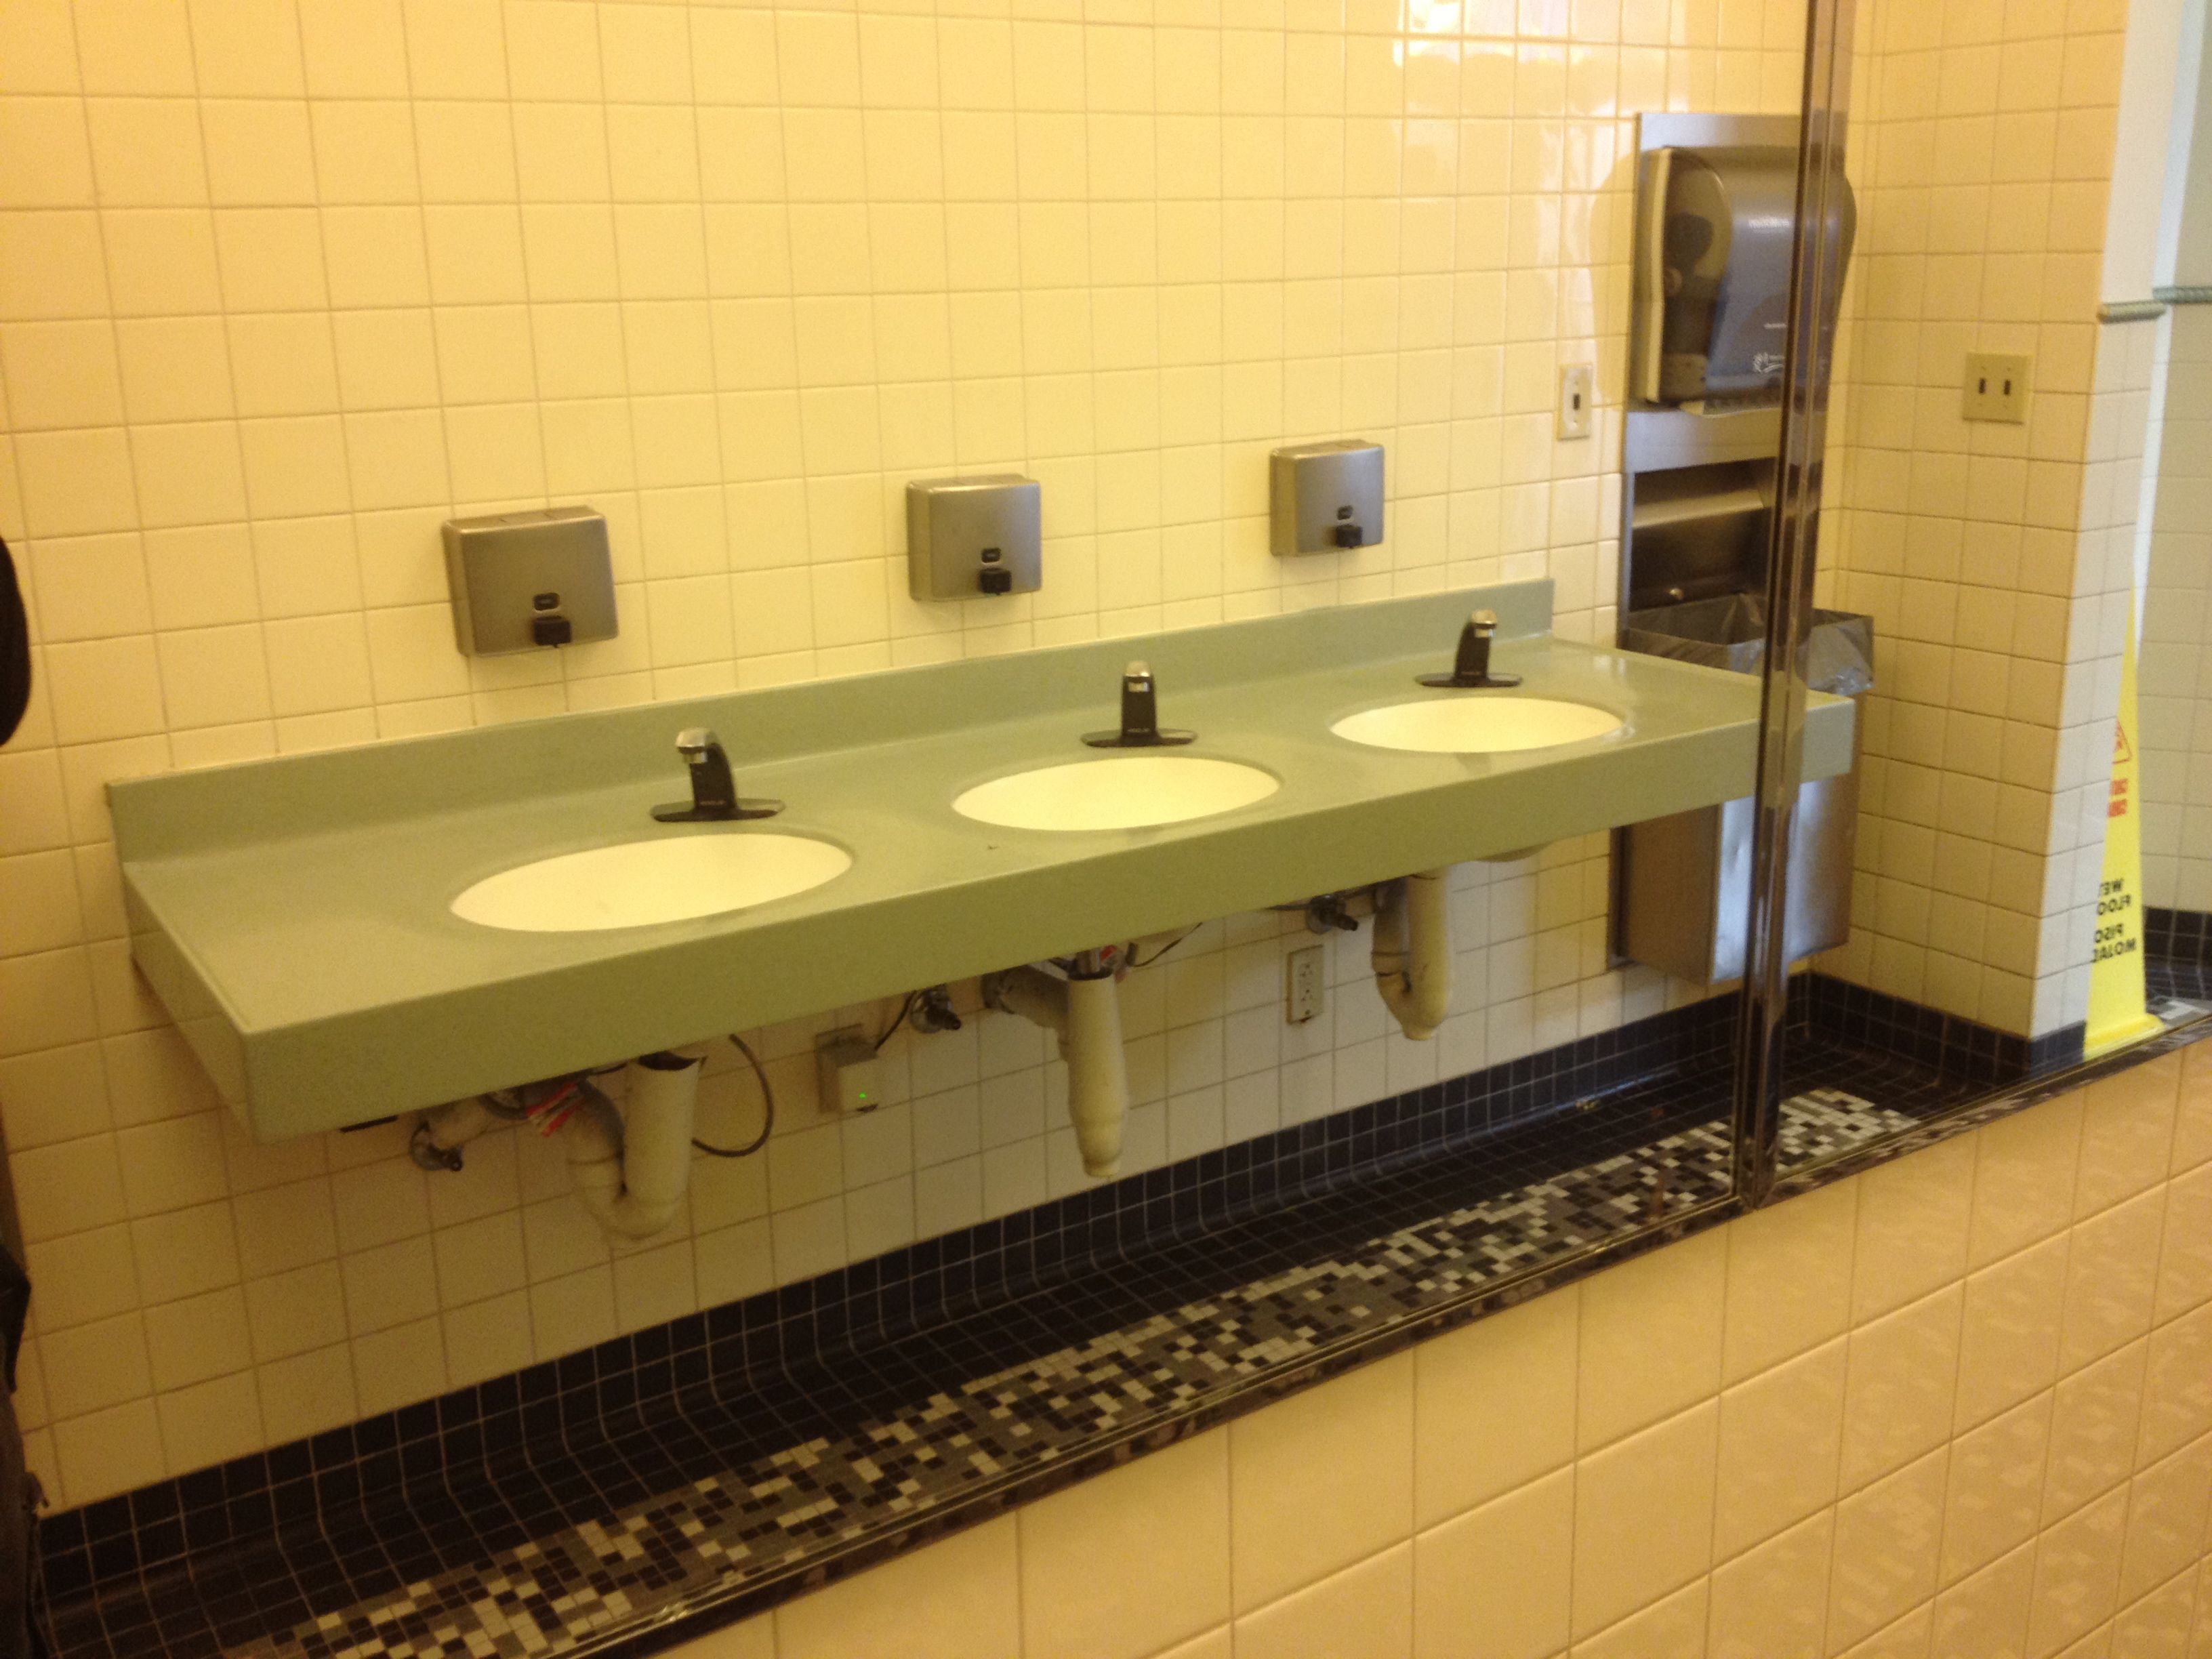 The devil is in the details for Public bathroom sink